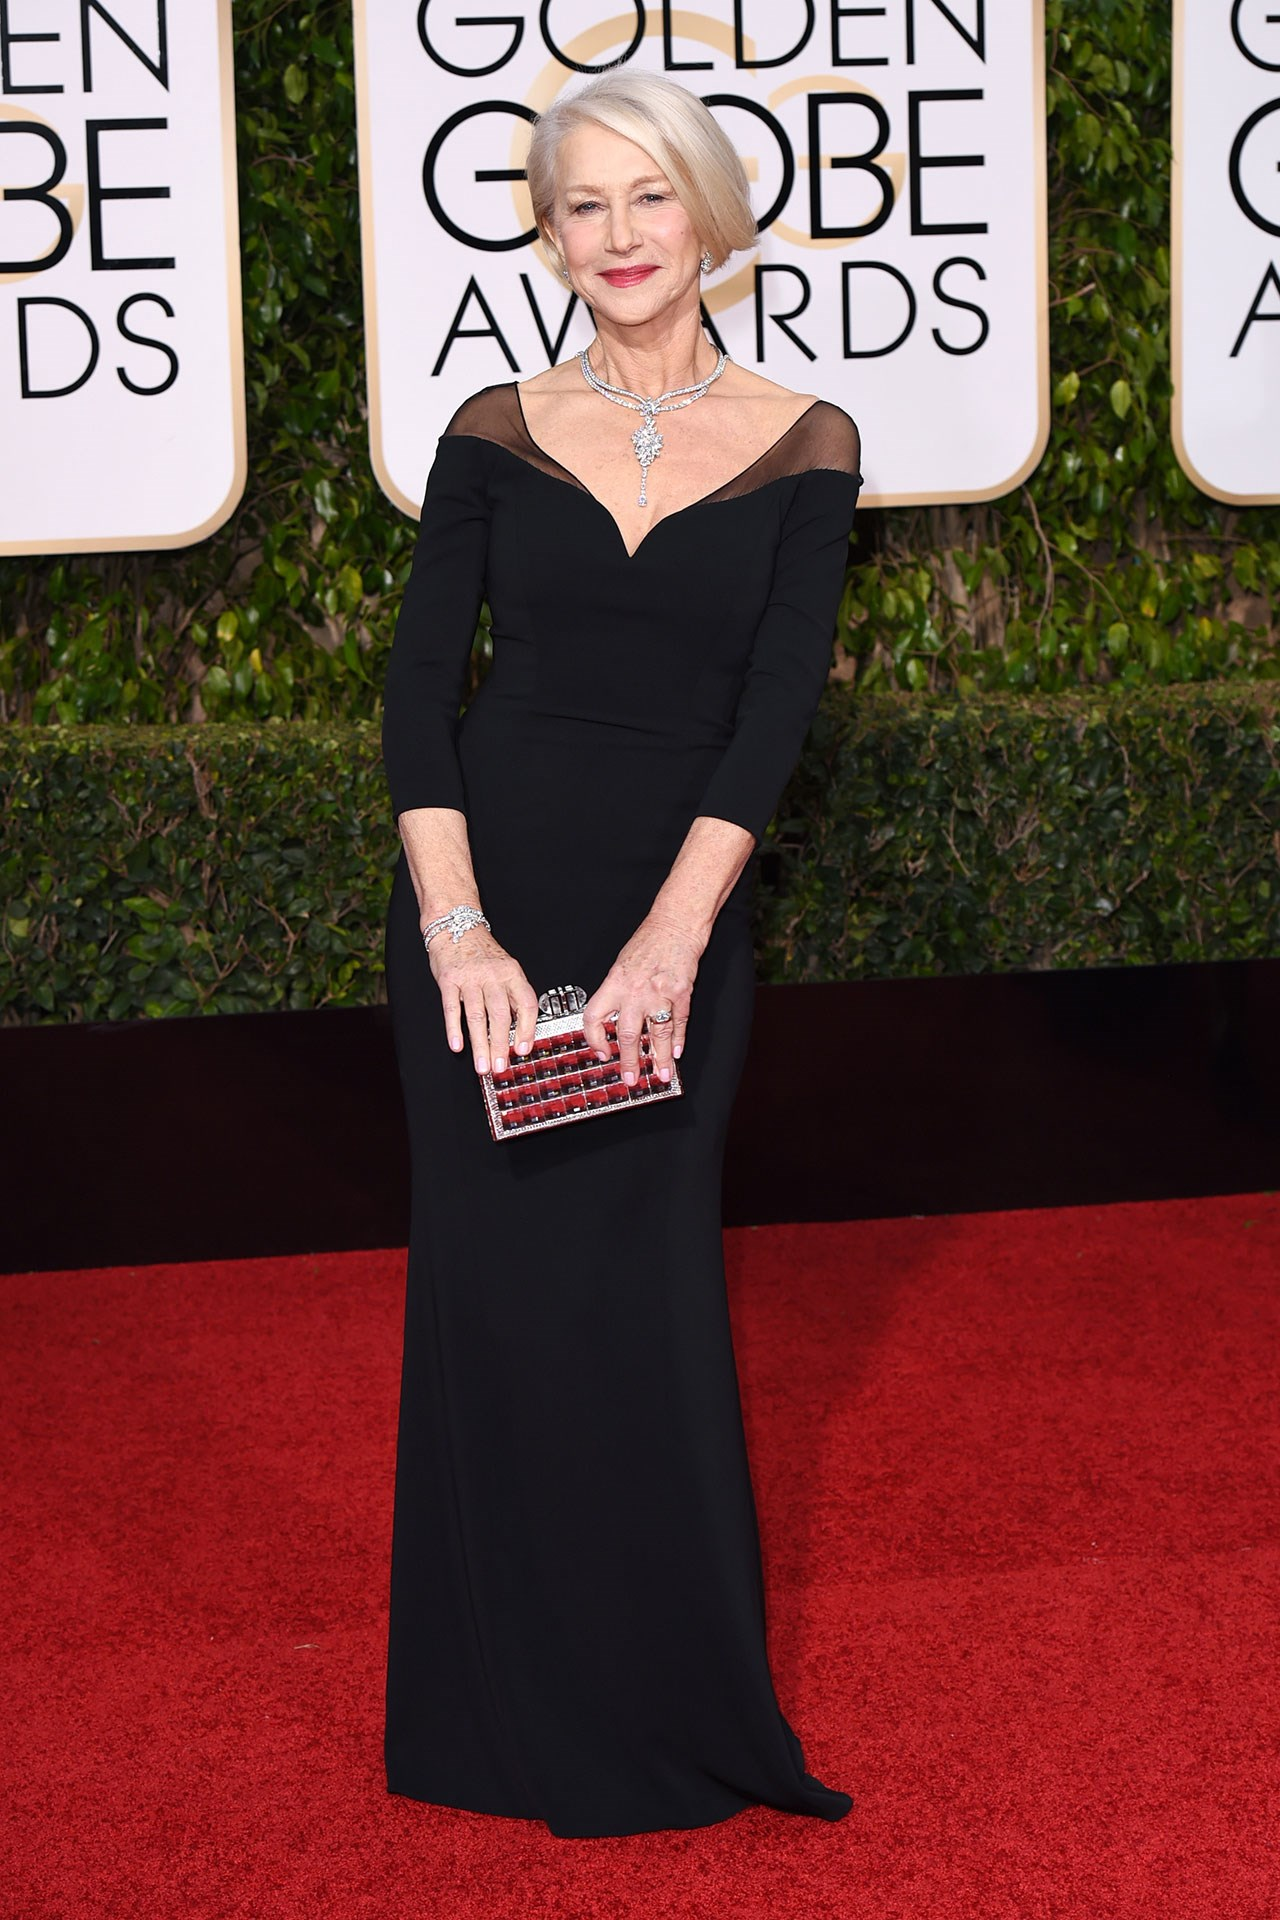 golden-globes-2016-helen-mirren